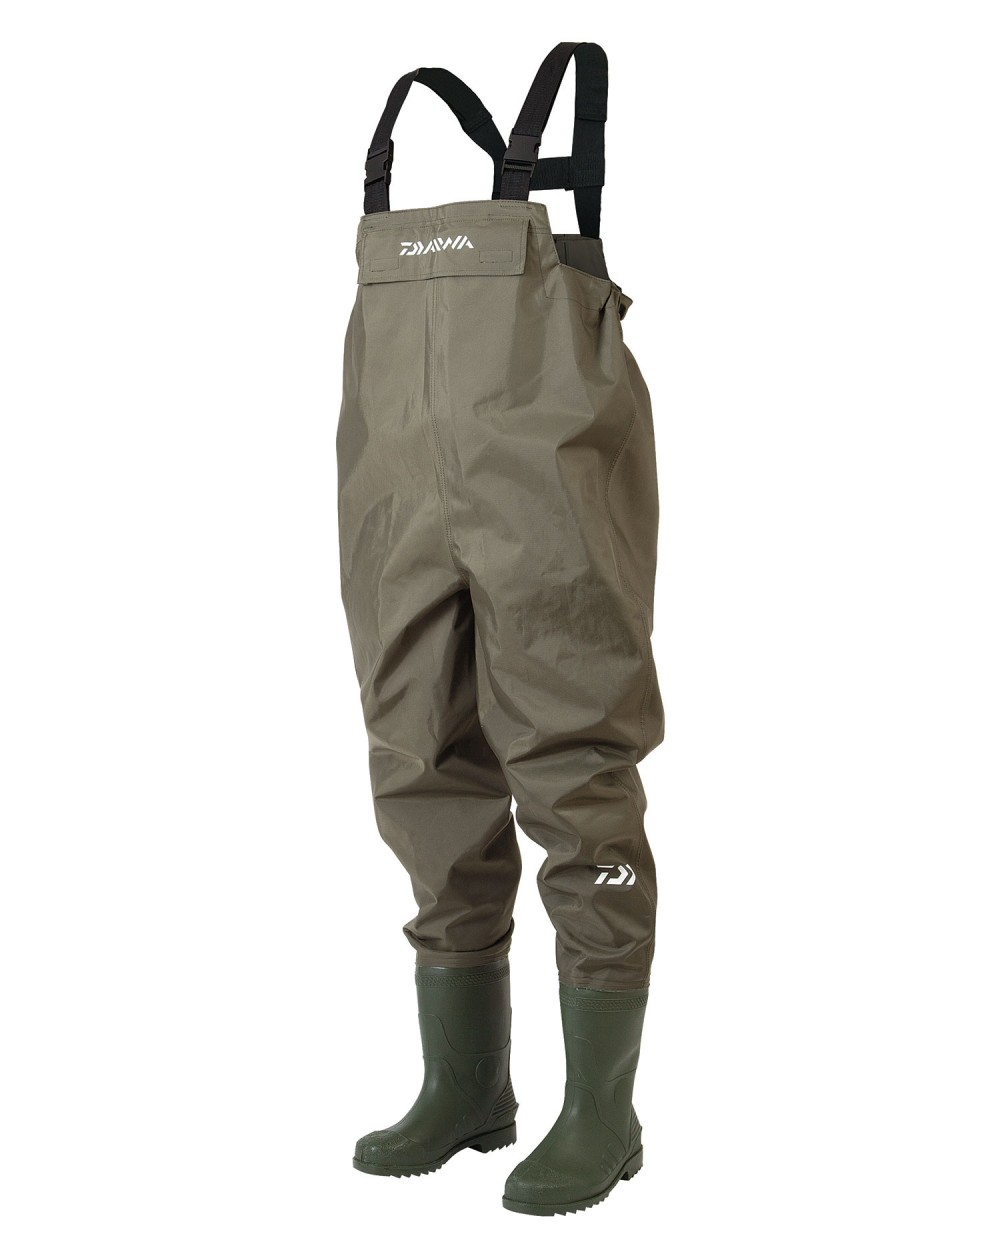 Daiwa Endura Lightweight Chest Wader